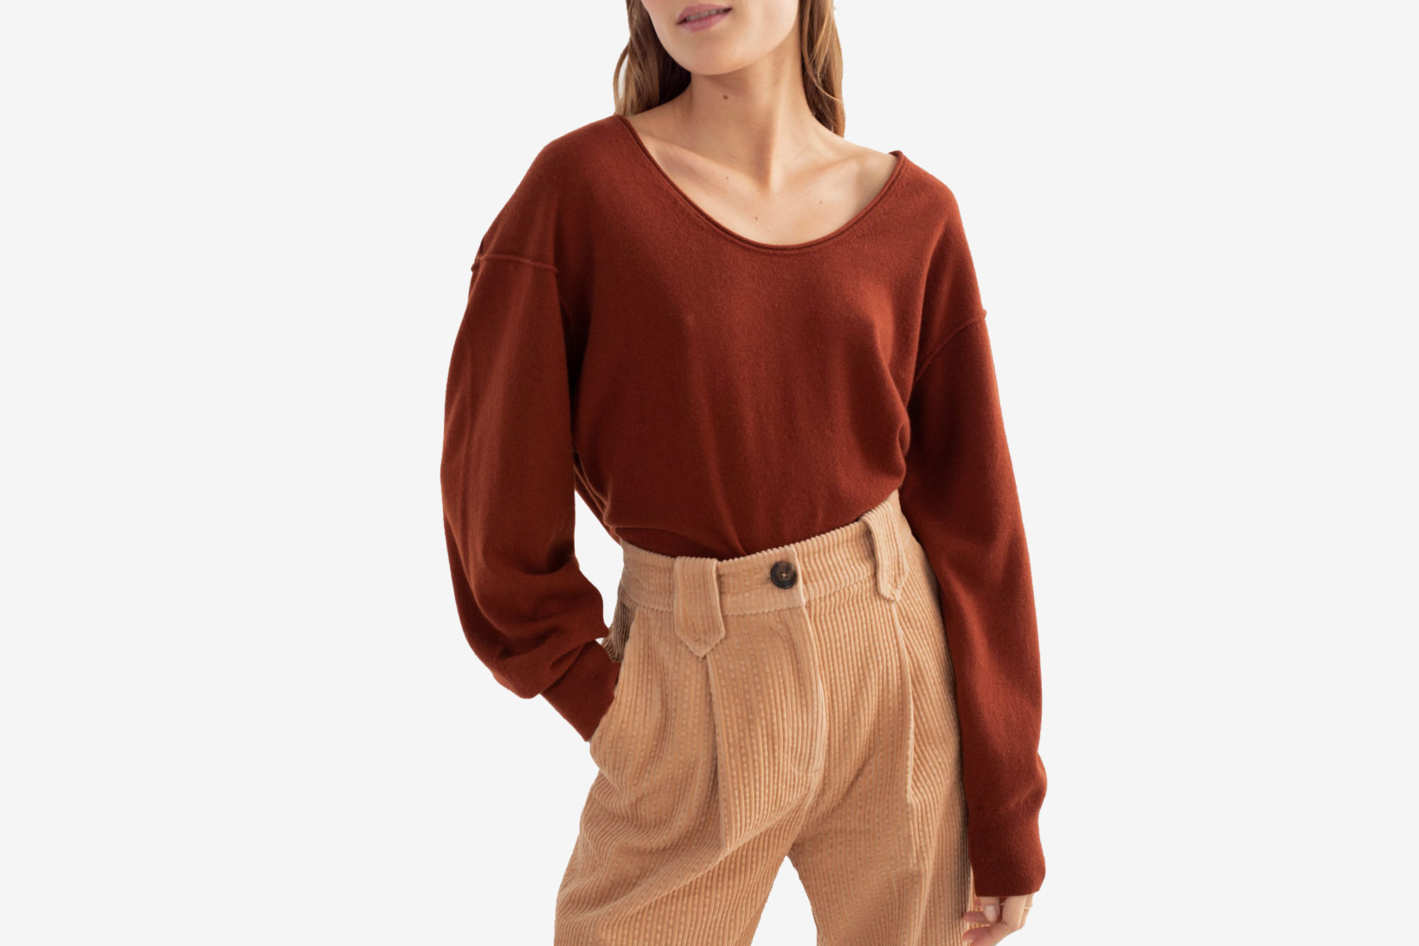 & Other Stories Scoop Neck Sweater